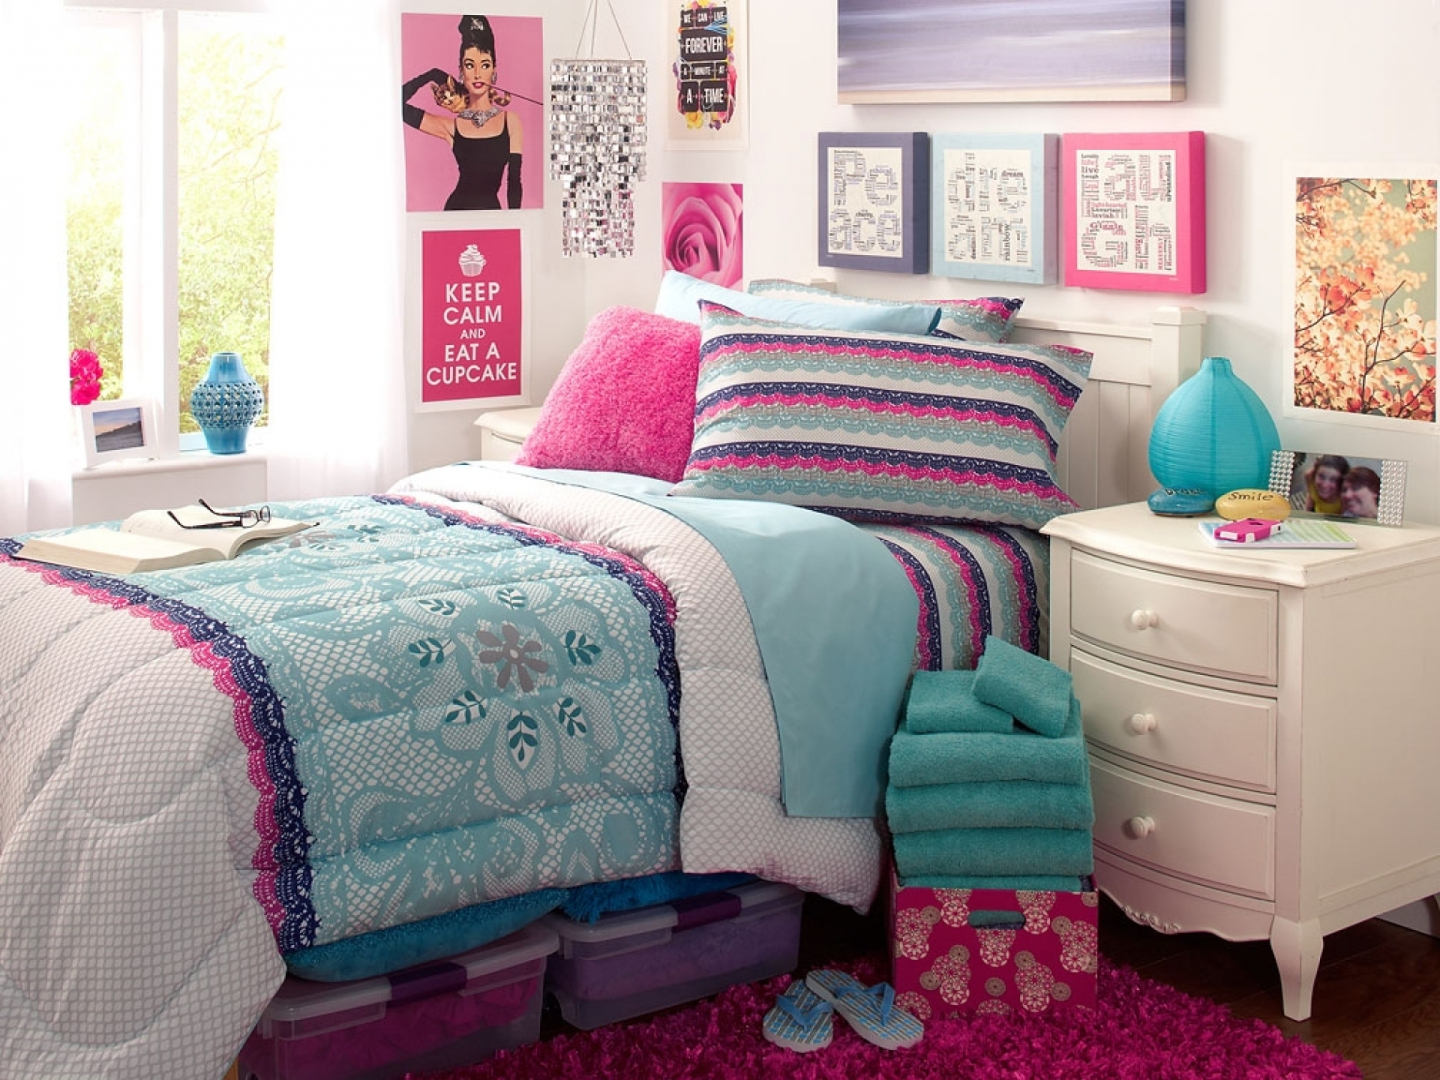 girly wallpapers for bedrooms,bedroom,bed sheet,furniture,bedding,pink